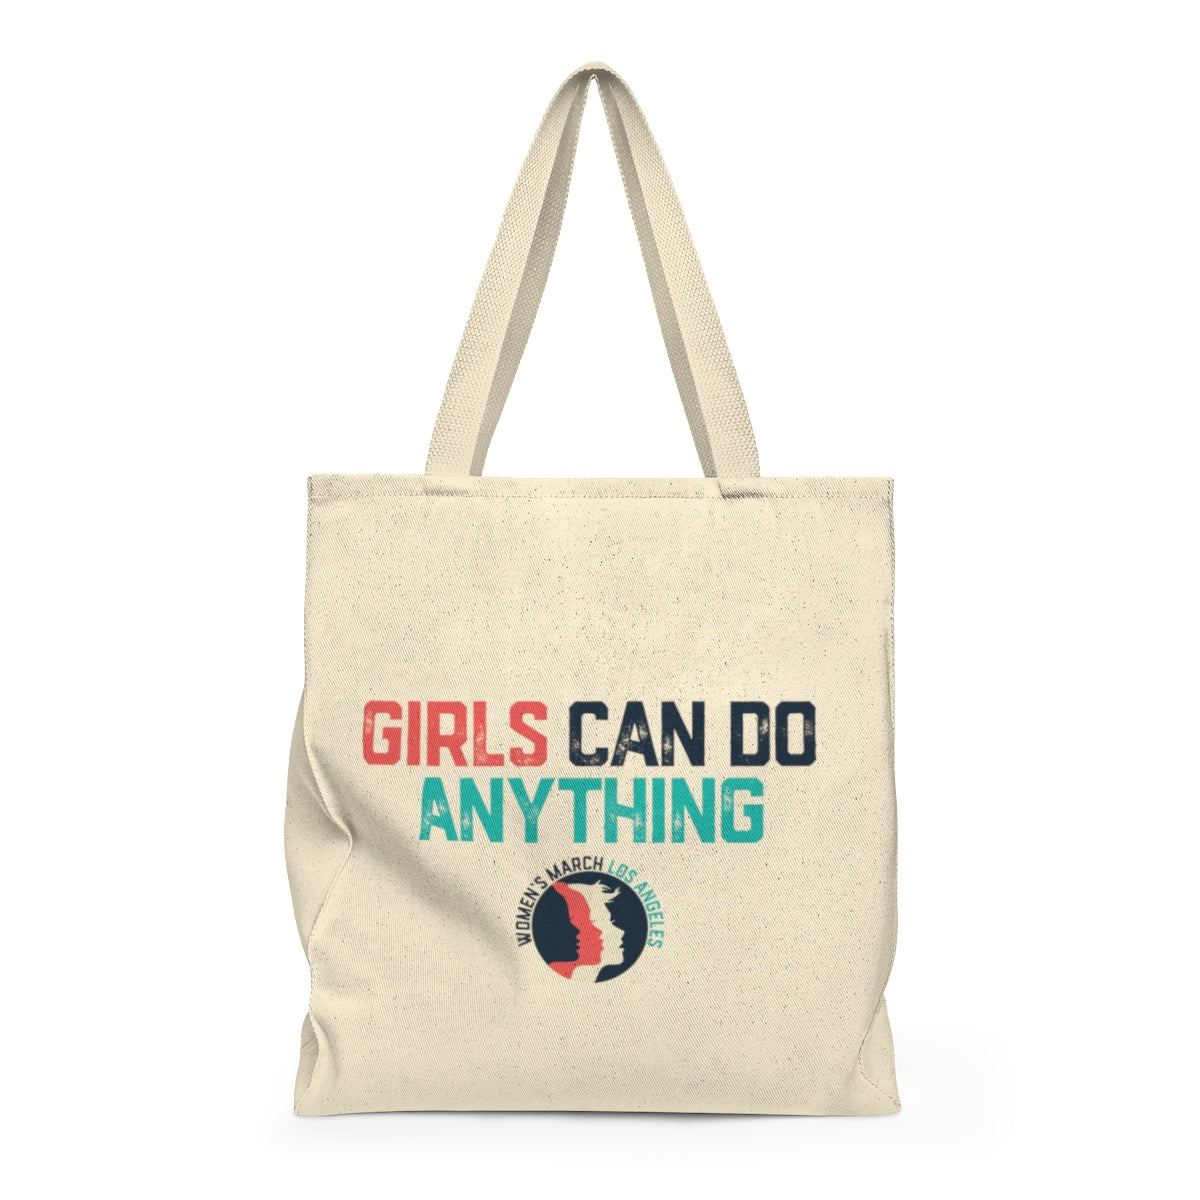 Girls can do anything shoulder Tote Bag - Roomy